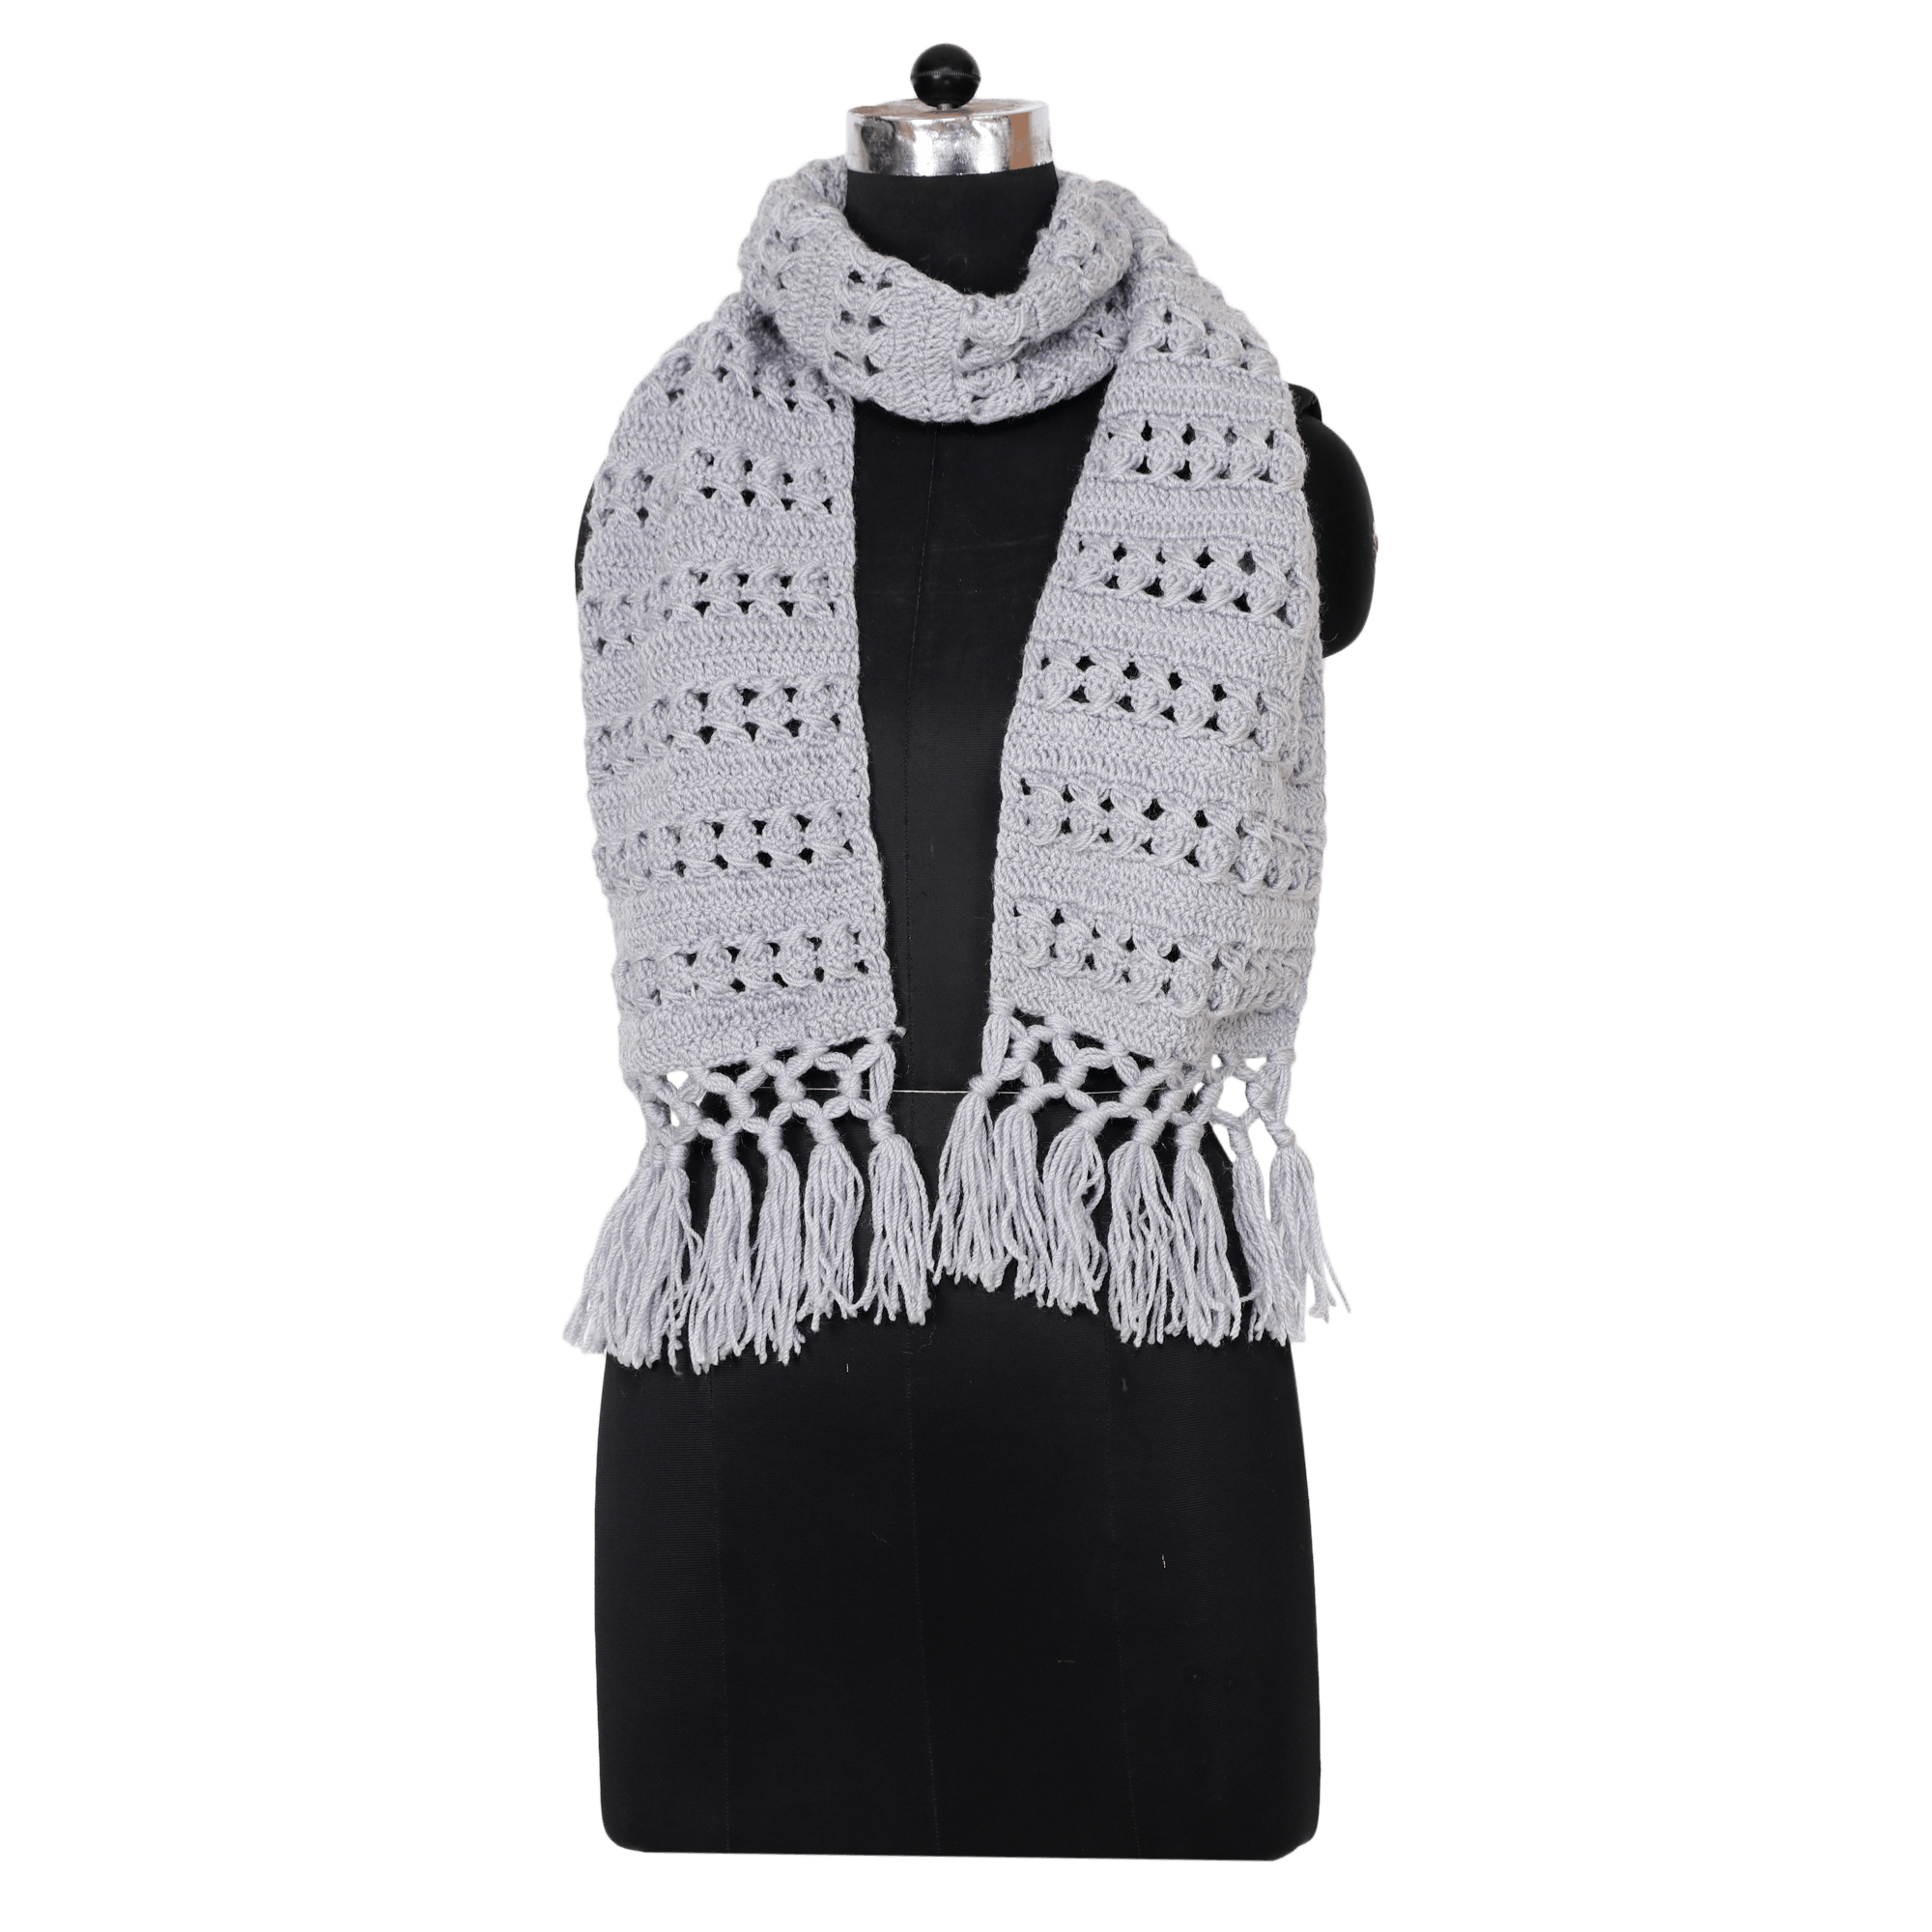 Indha Craft Grey Colour Woolen Knitted Muffler For Men Women Curated Online Shop For Handcrafted Products Made In India By Women Artisans